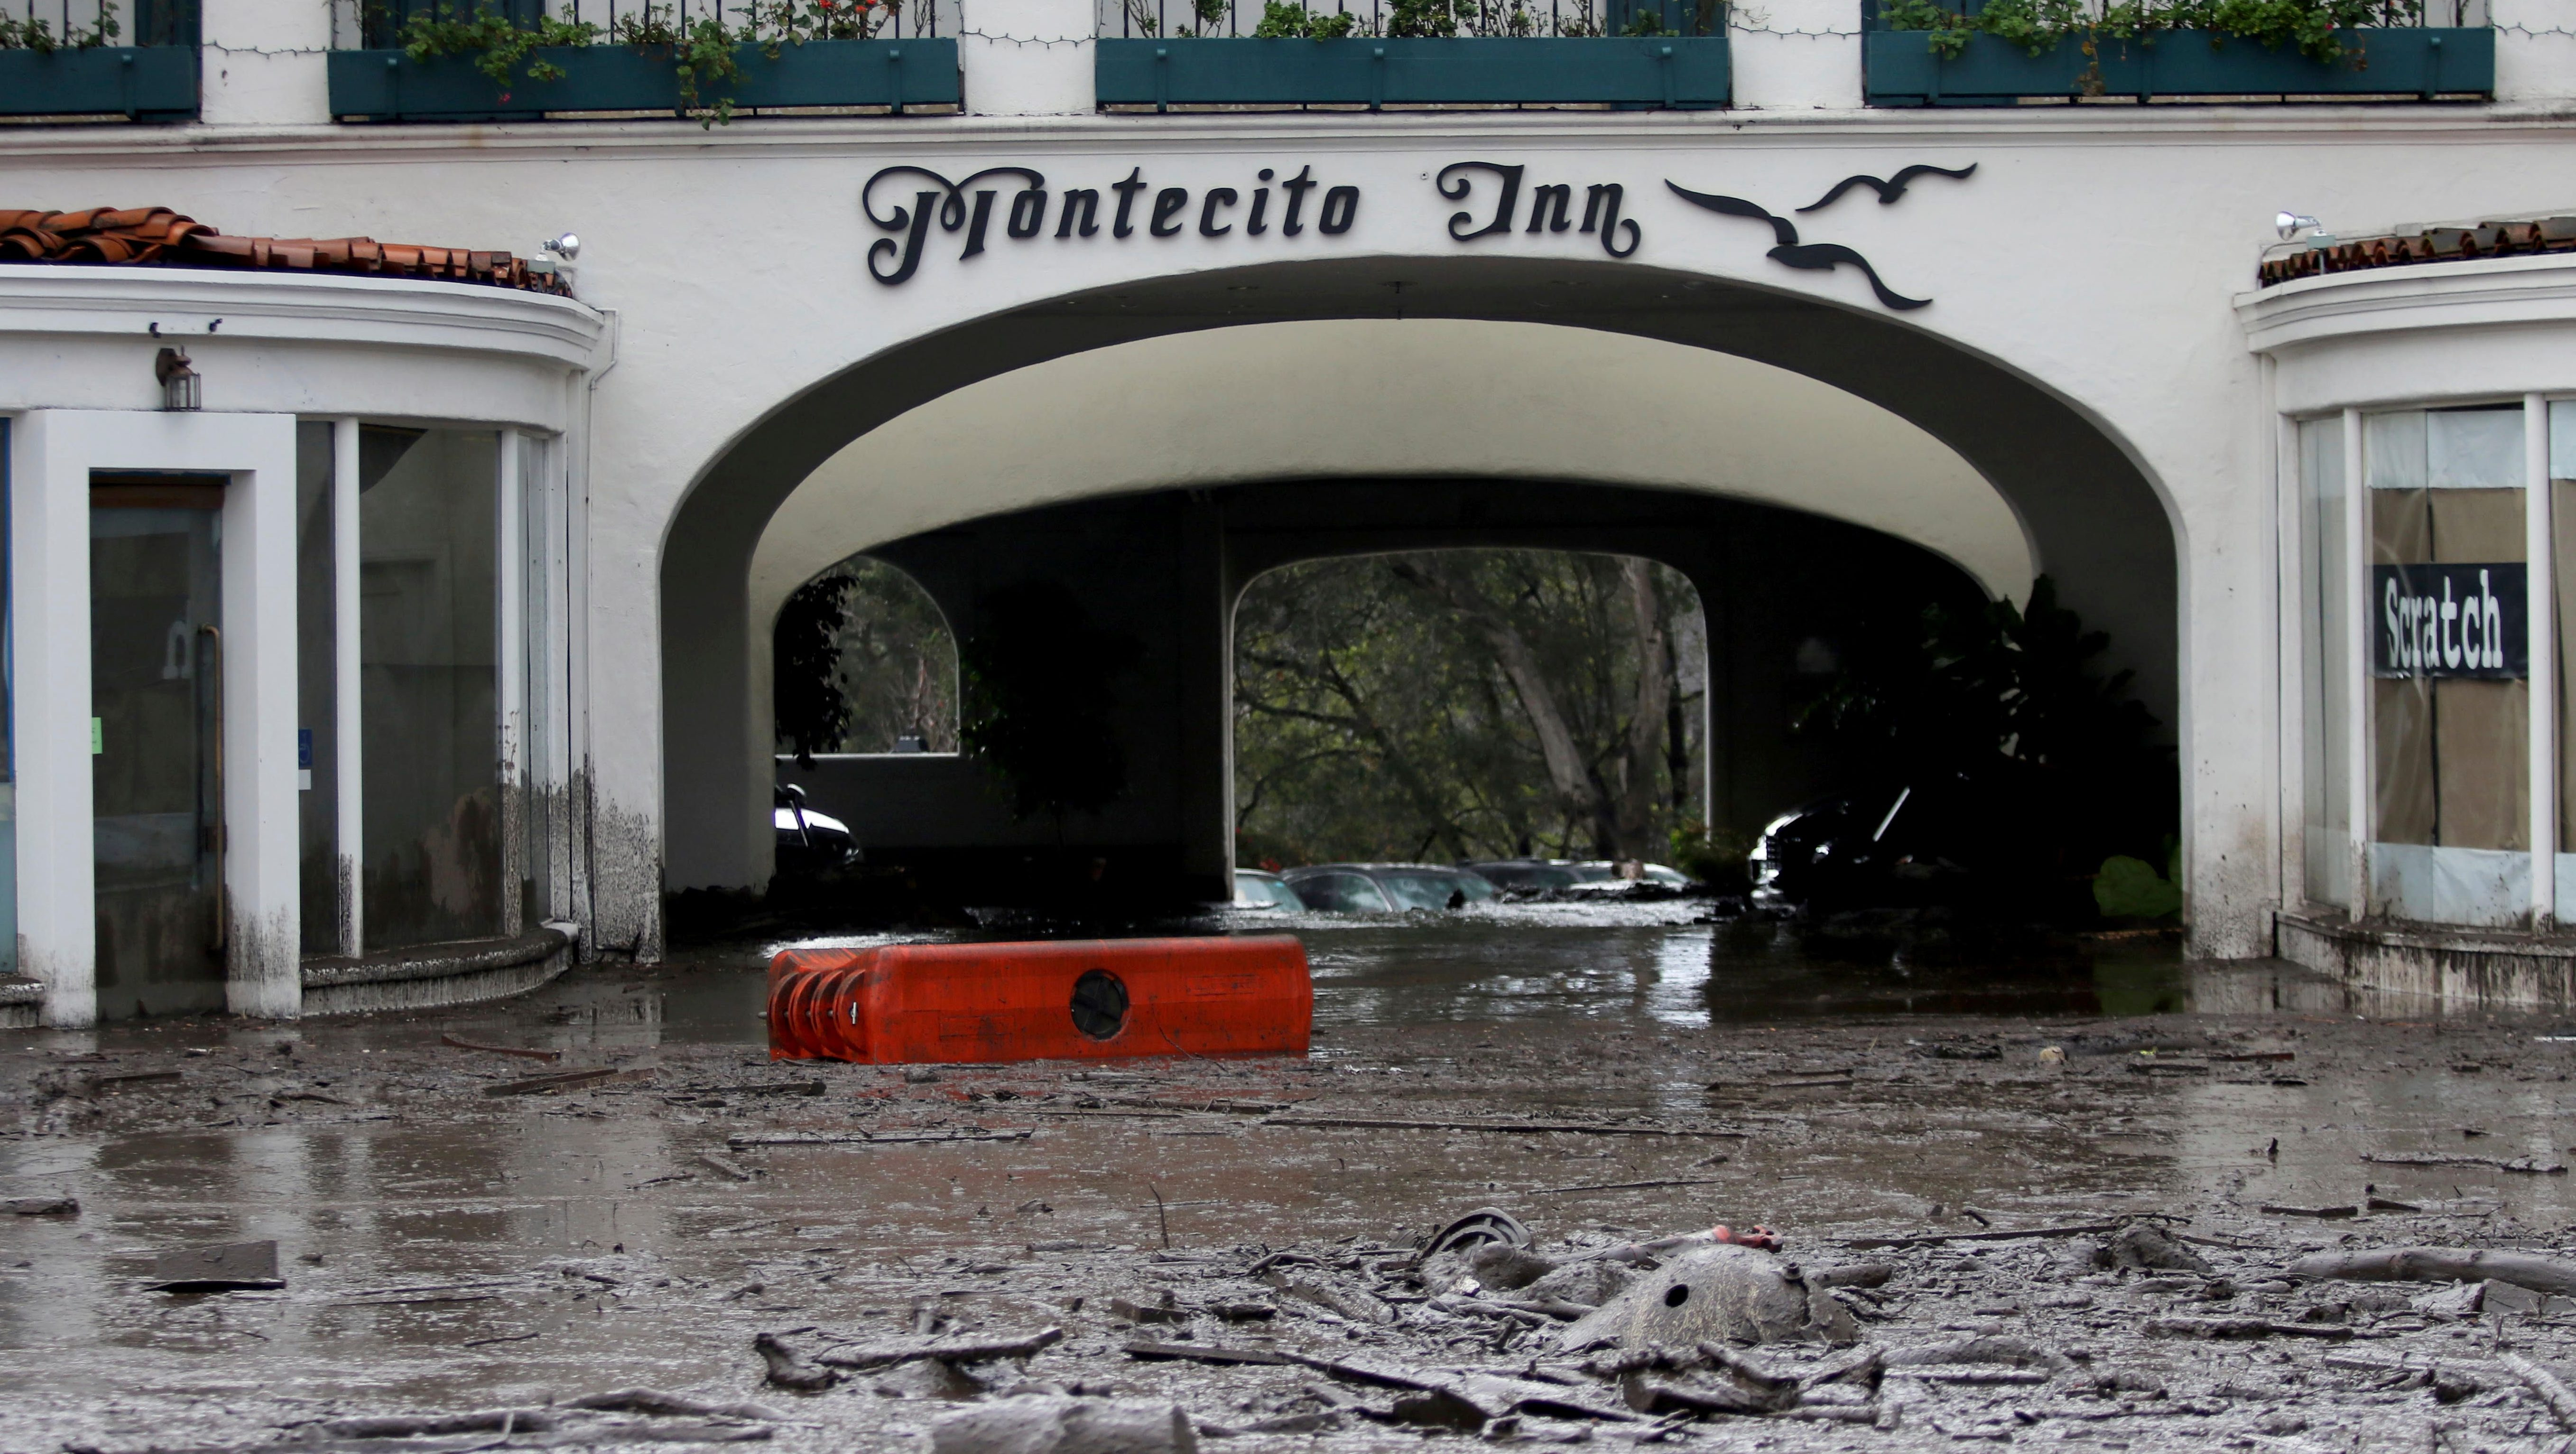 A flooded inn in Montecito, viewed from the outside with water flowing beneath its portico.